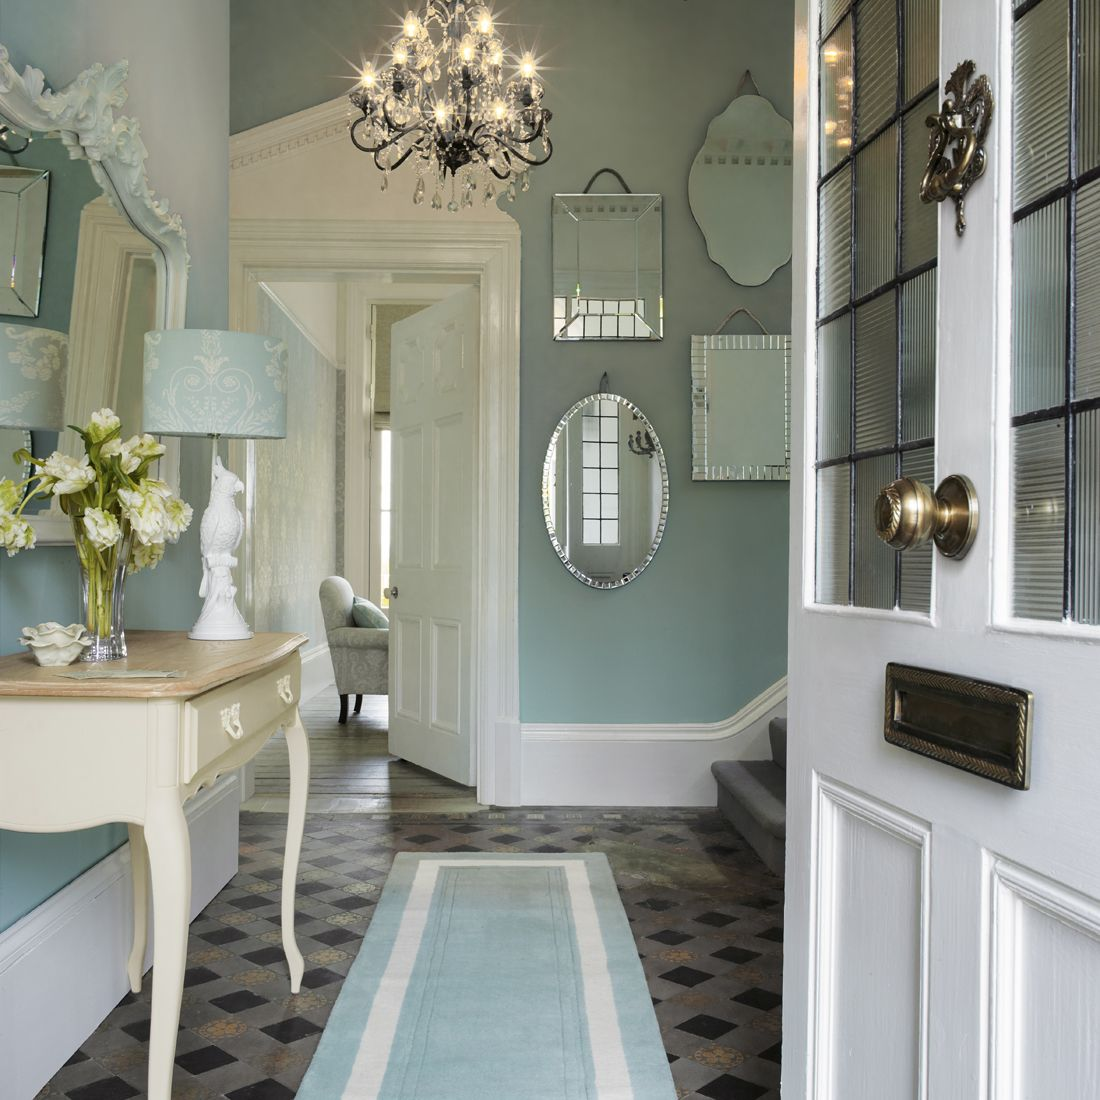 Laura Ashley Hallway Of Dreams, With Dark Duck Egg Paint